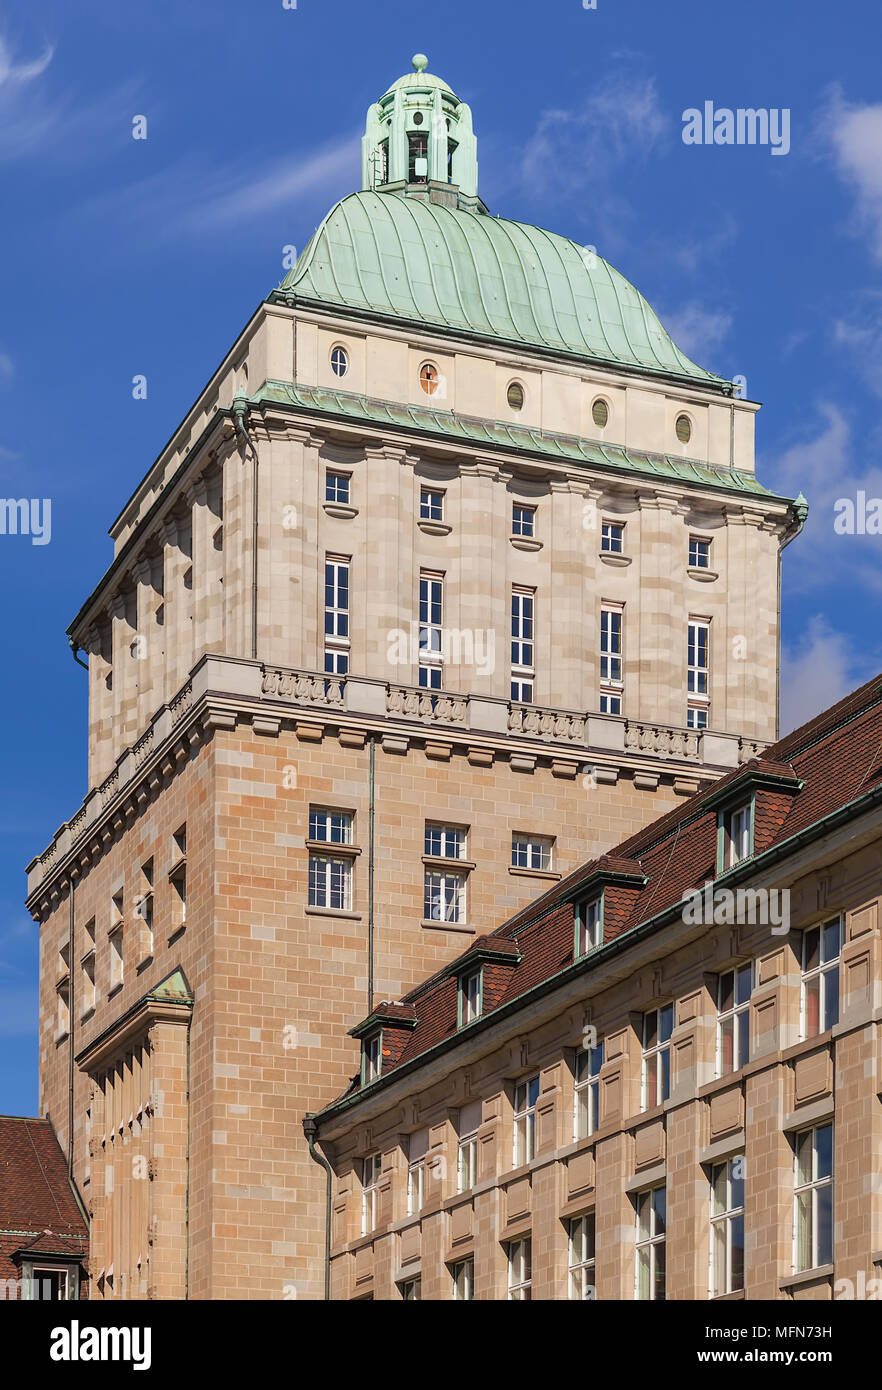 Zurich, Switzerland - 13 October, 2013: the tower of the main building of the University of Zurich. The University of Zurich, located in the city of Z - Stock Image